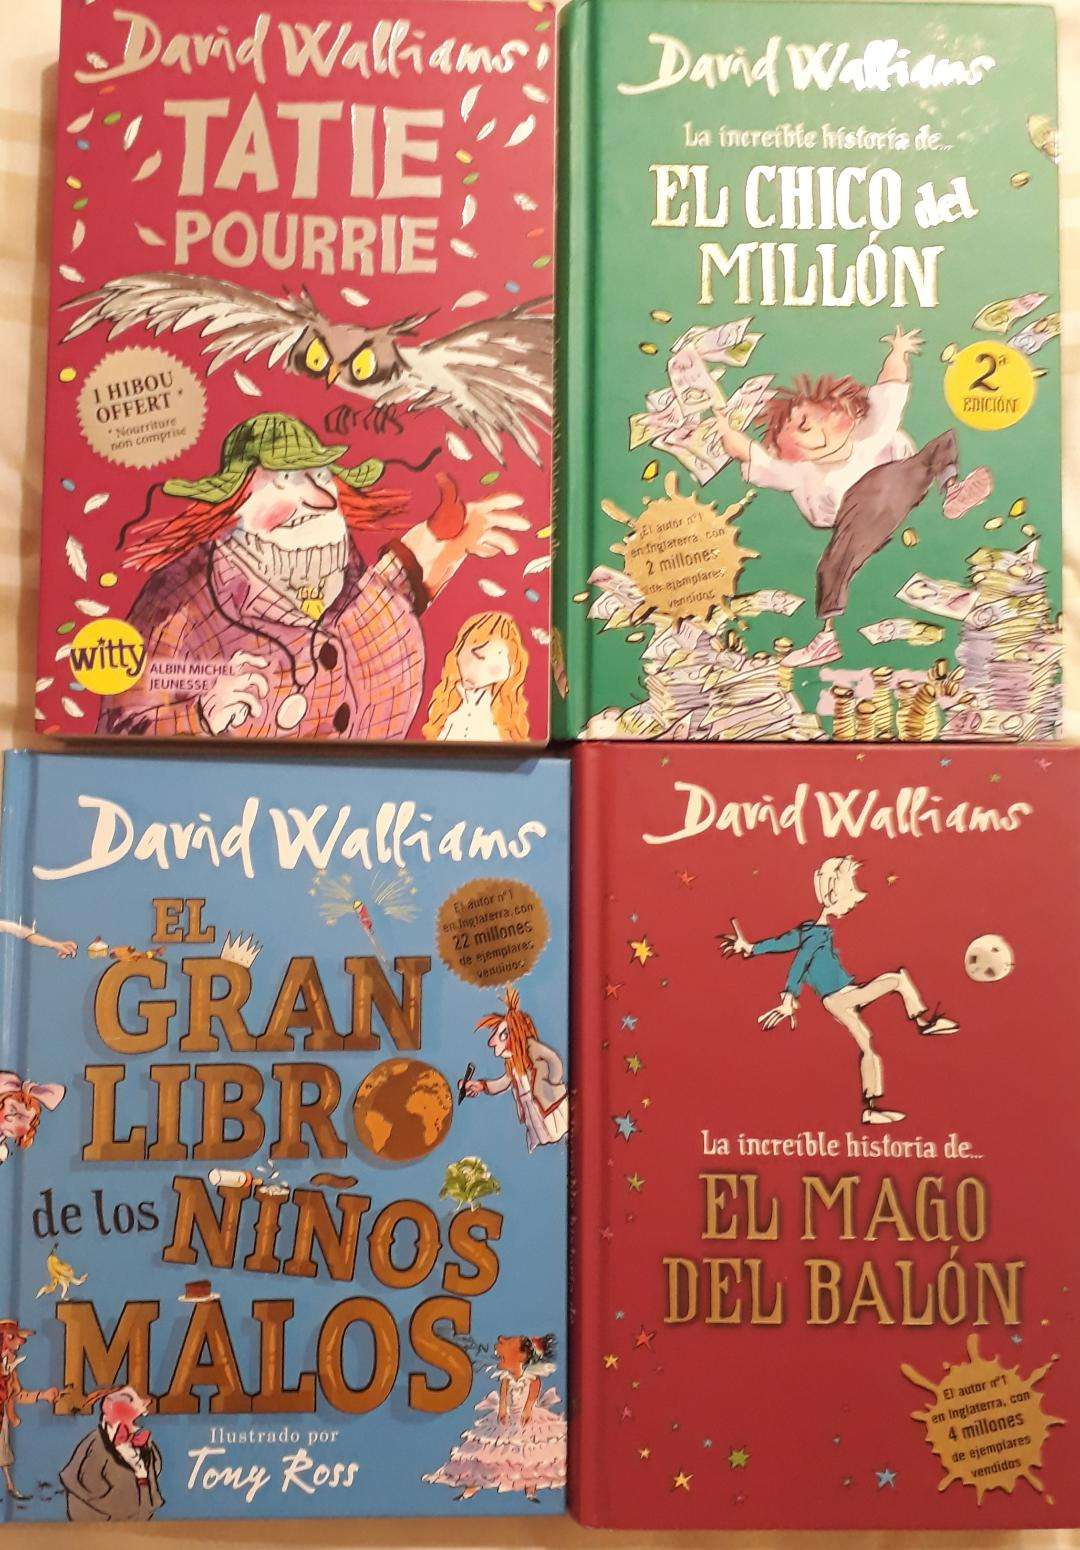 David Walliams-leyendo en familia-Virginia Gil